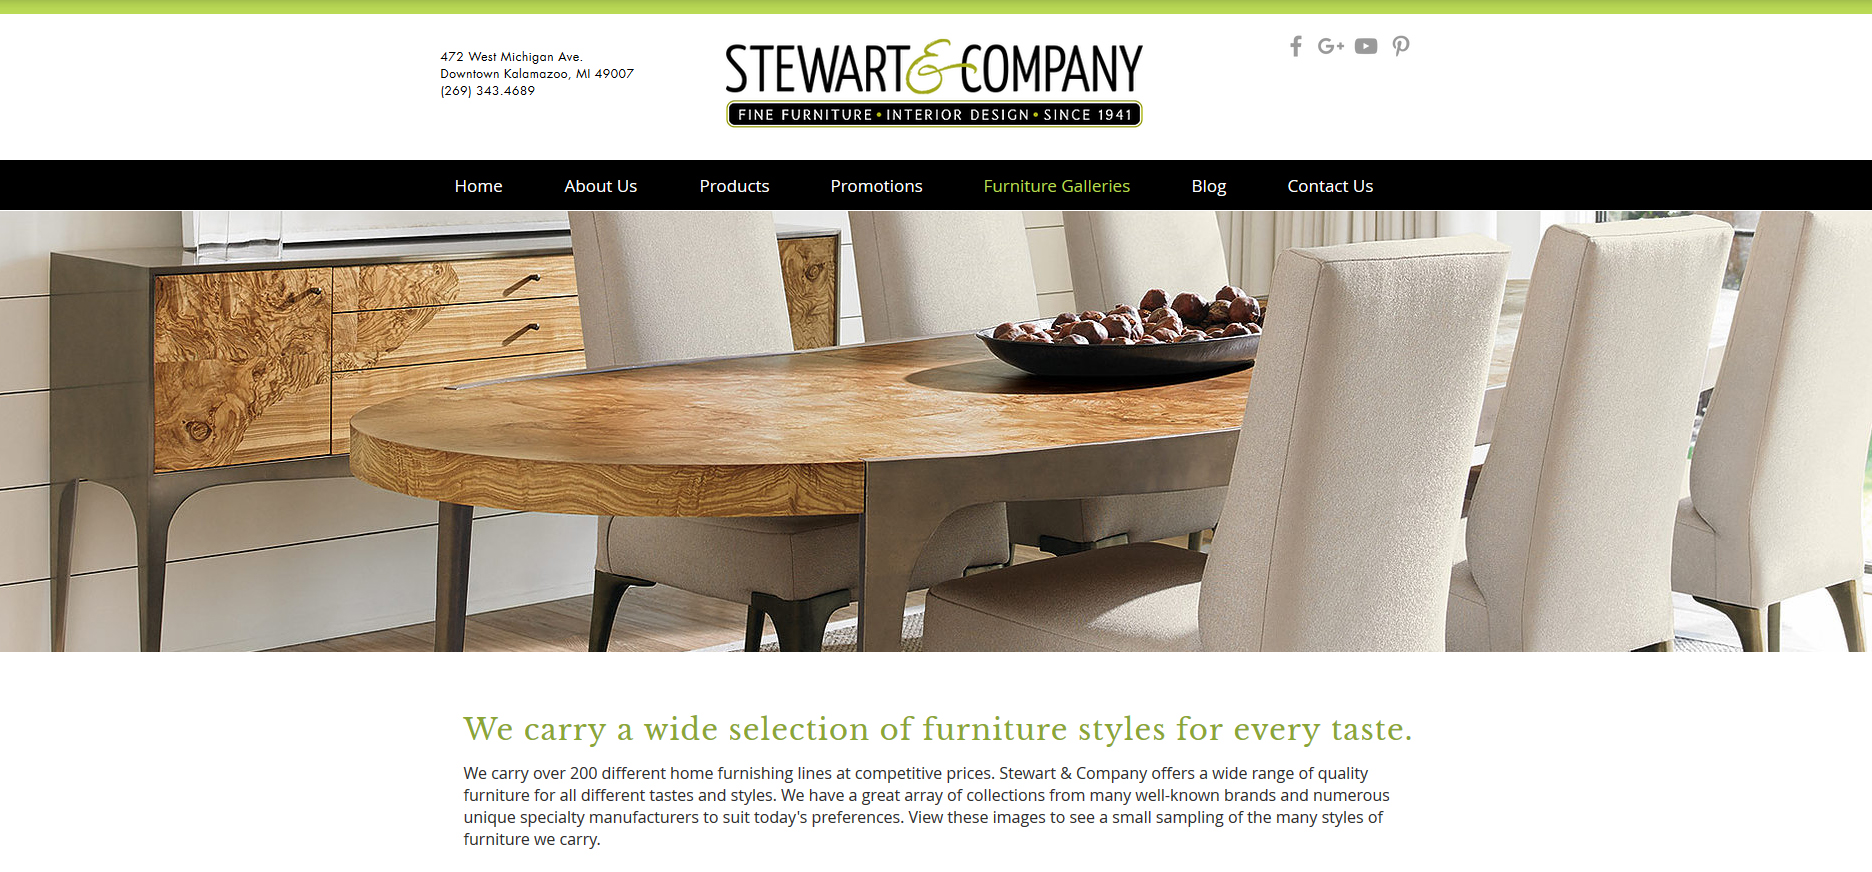 Superieur Welcome To Stewart And Company Fine Furniture And Interior Design